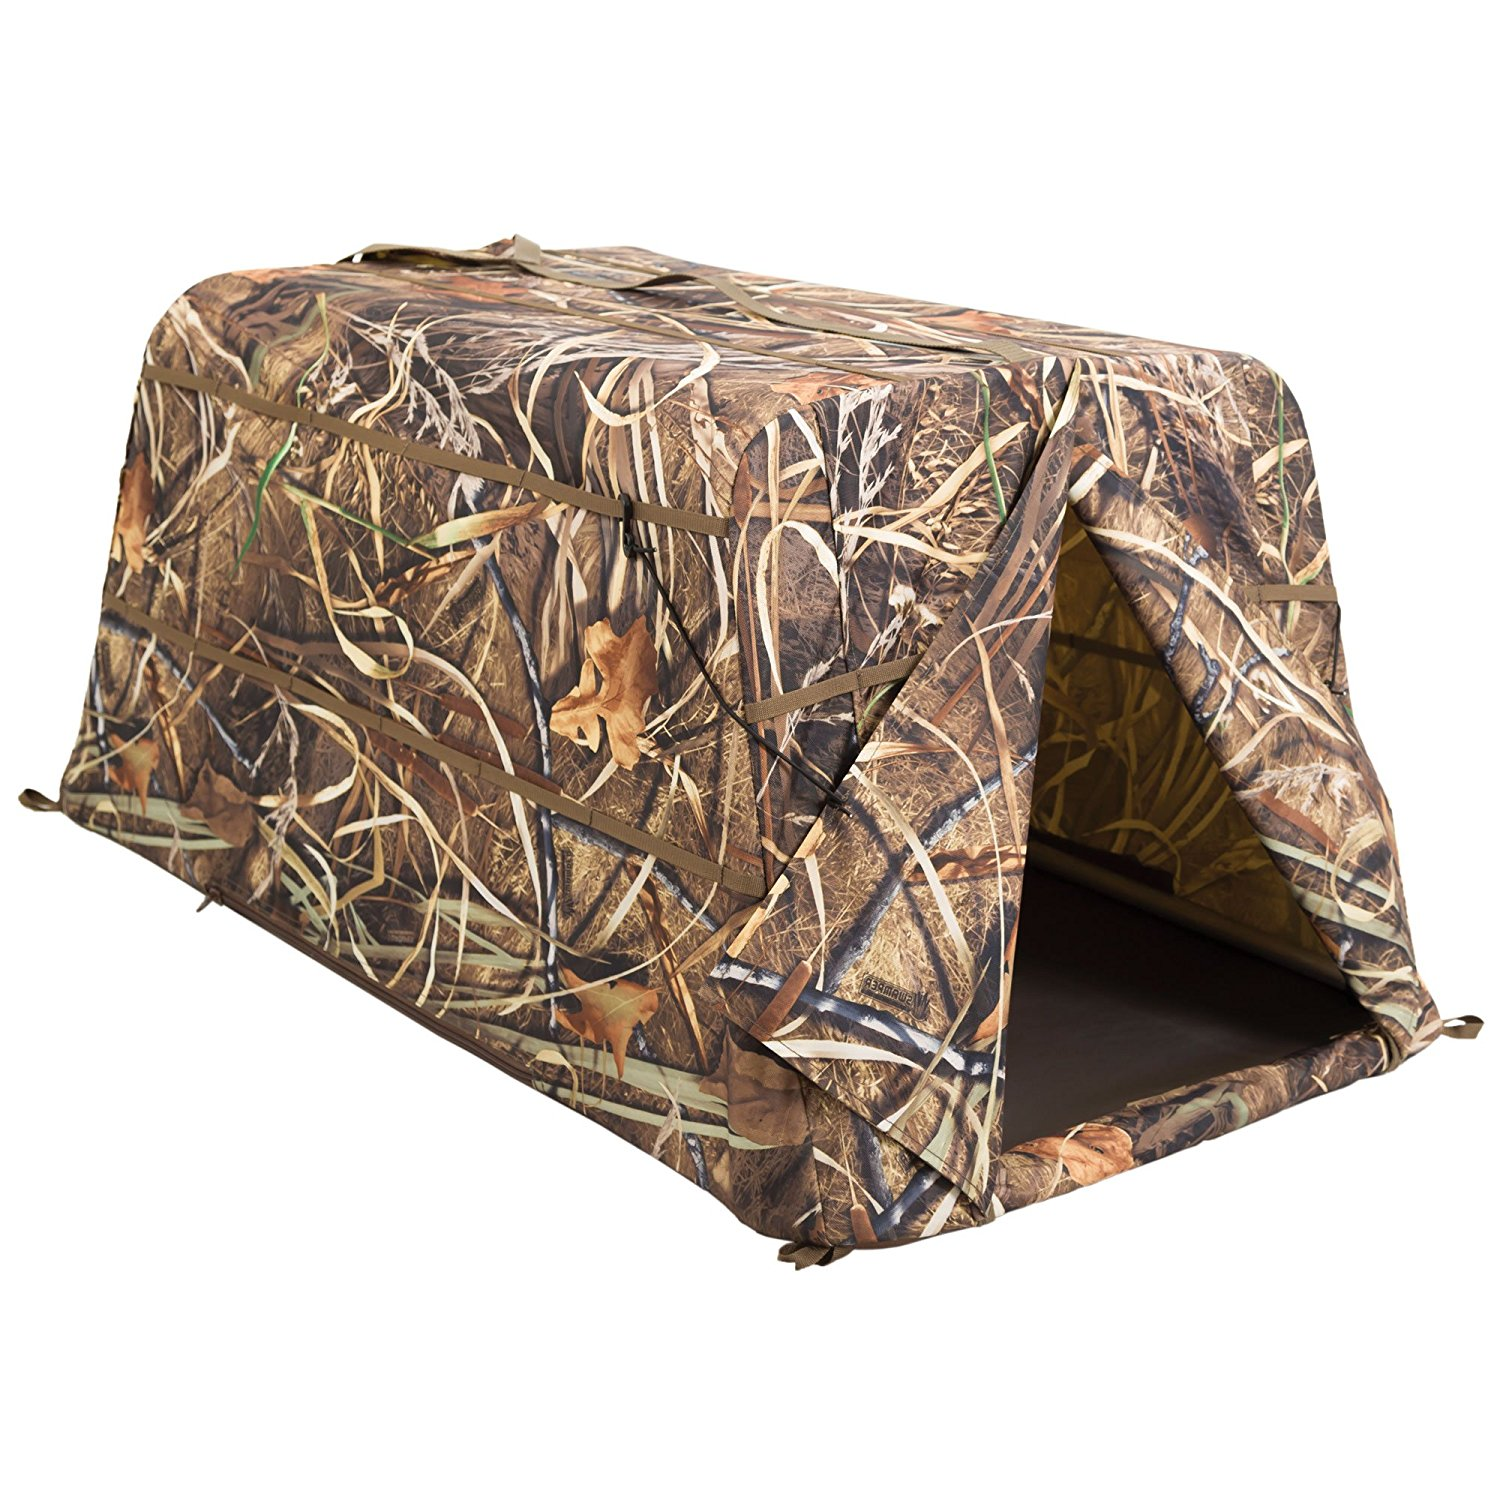 force realtree ground blinds person blind two layout banded ghg avery p images gallery man in finisher